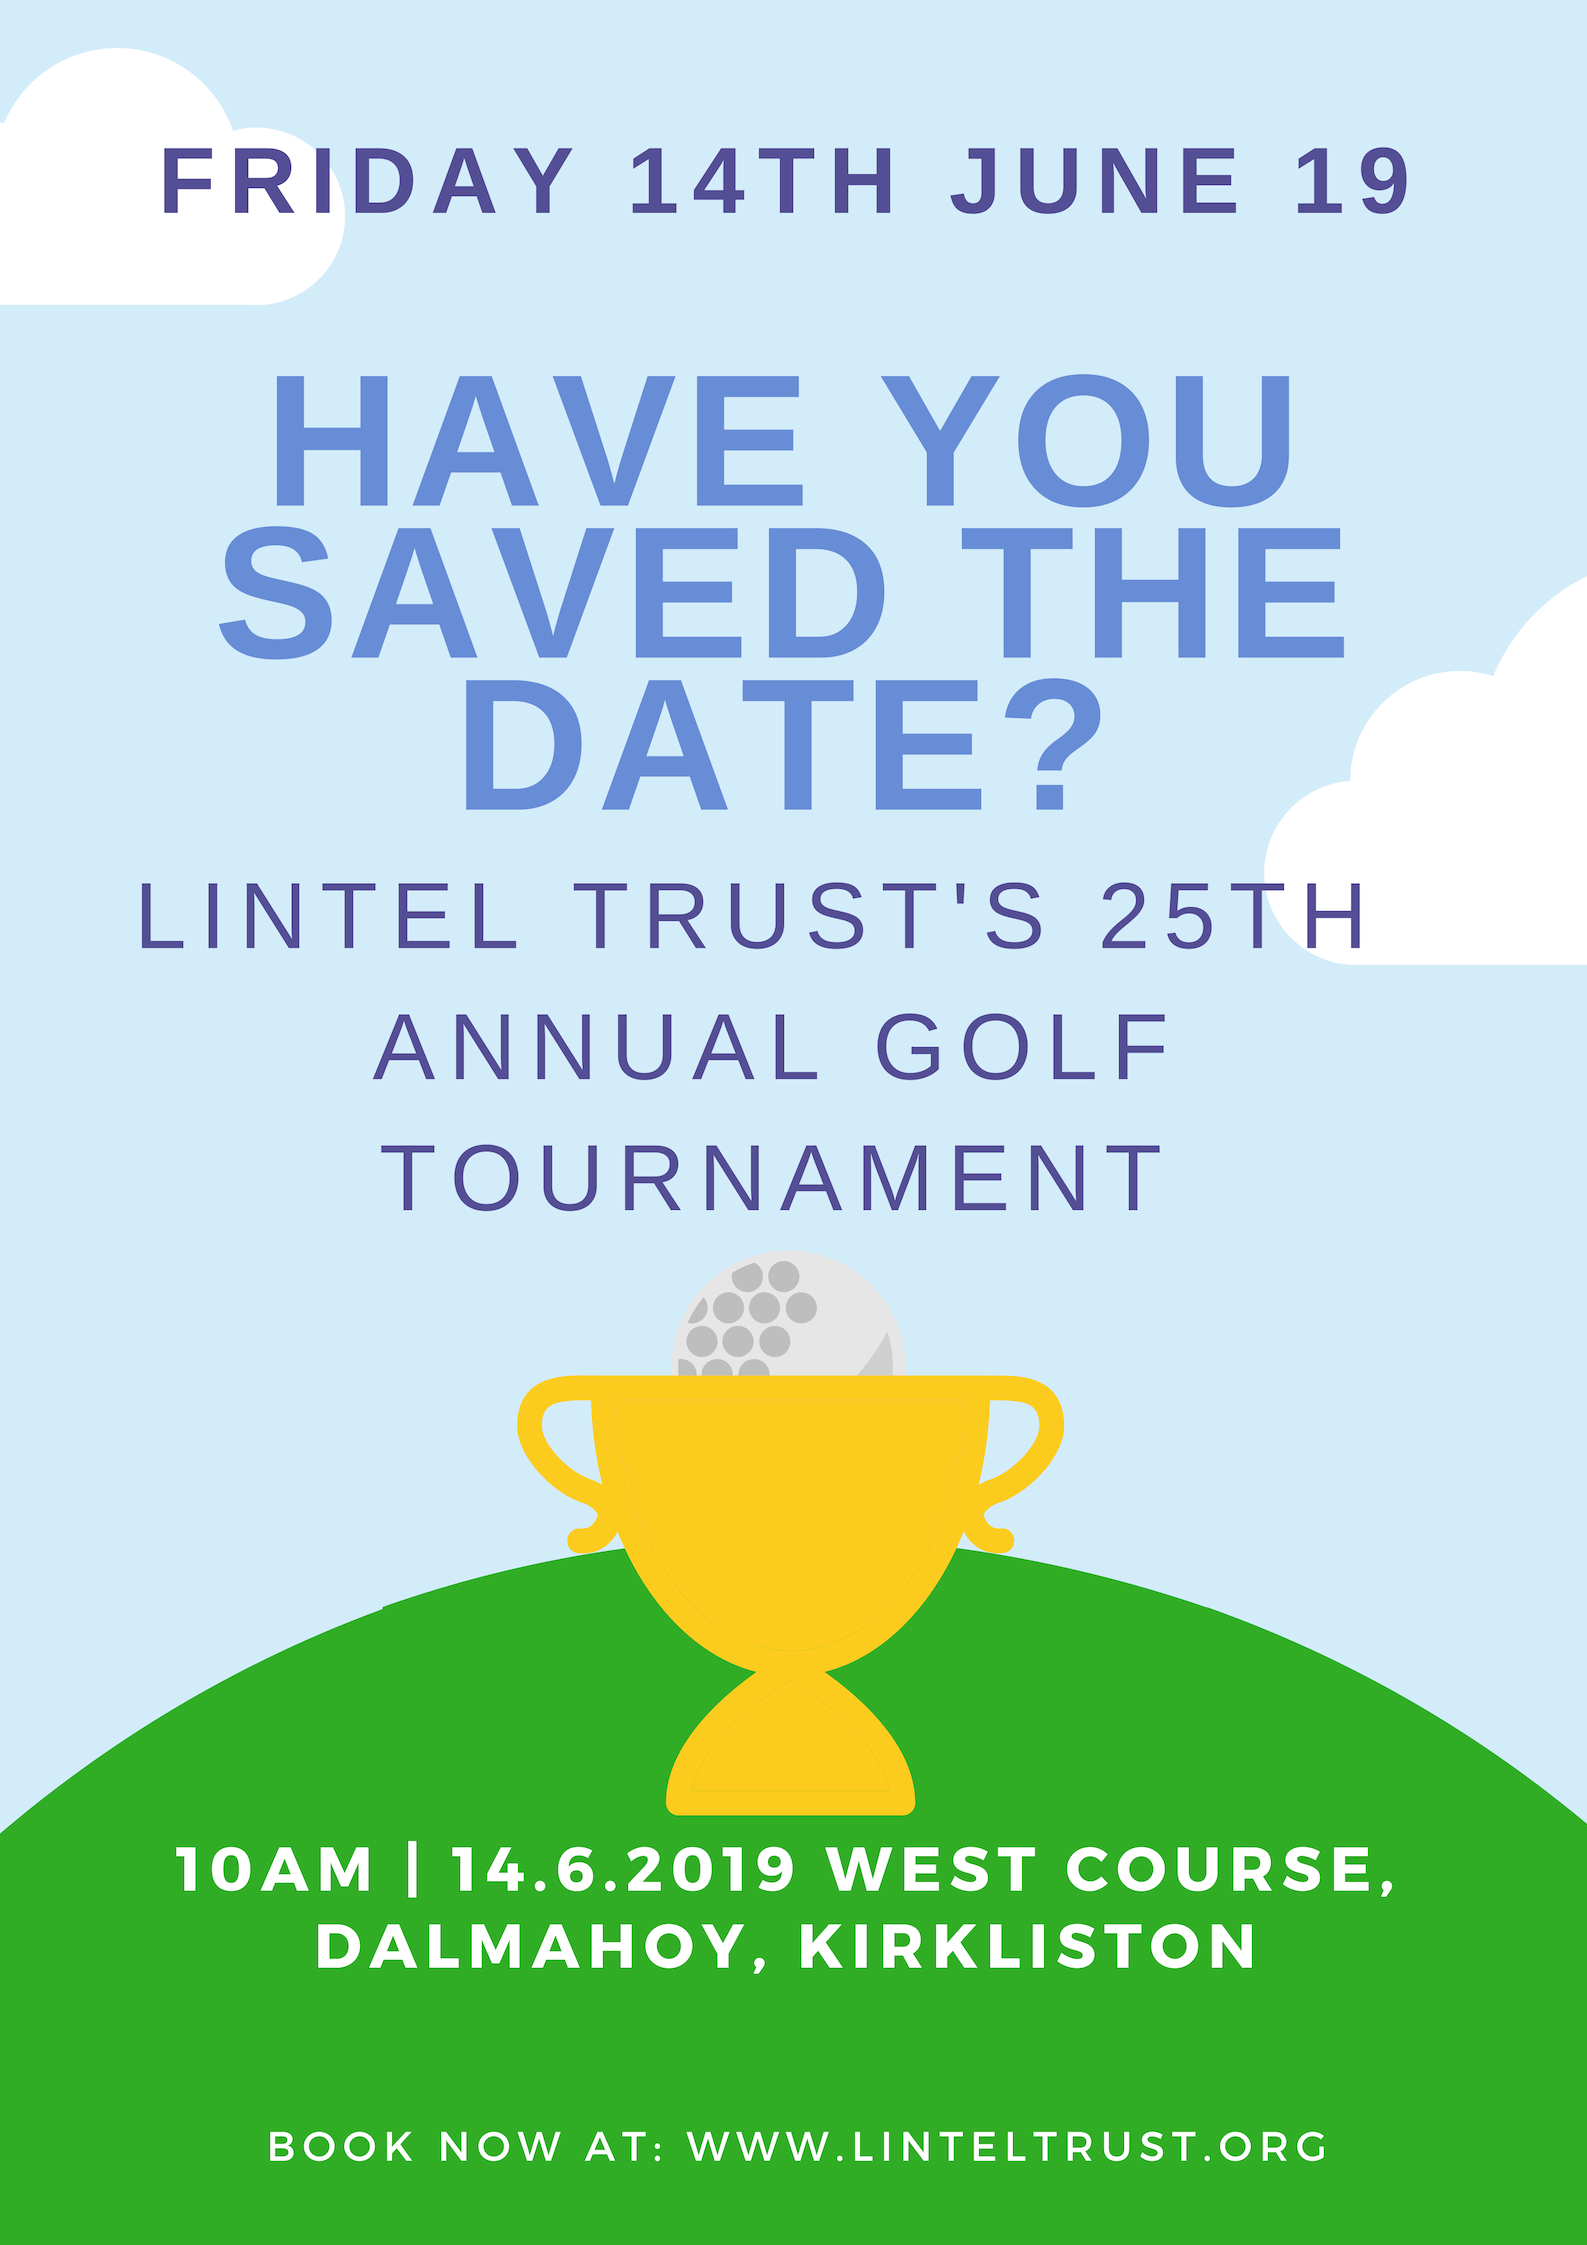 Save the Date poster for 2019 golf tournament, 14th June 2019